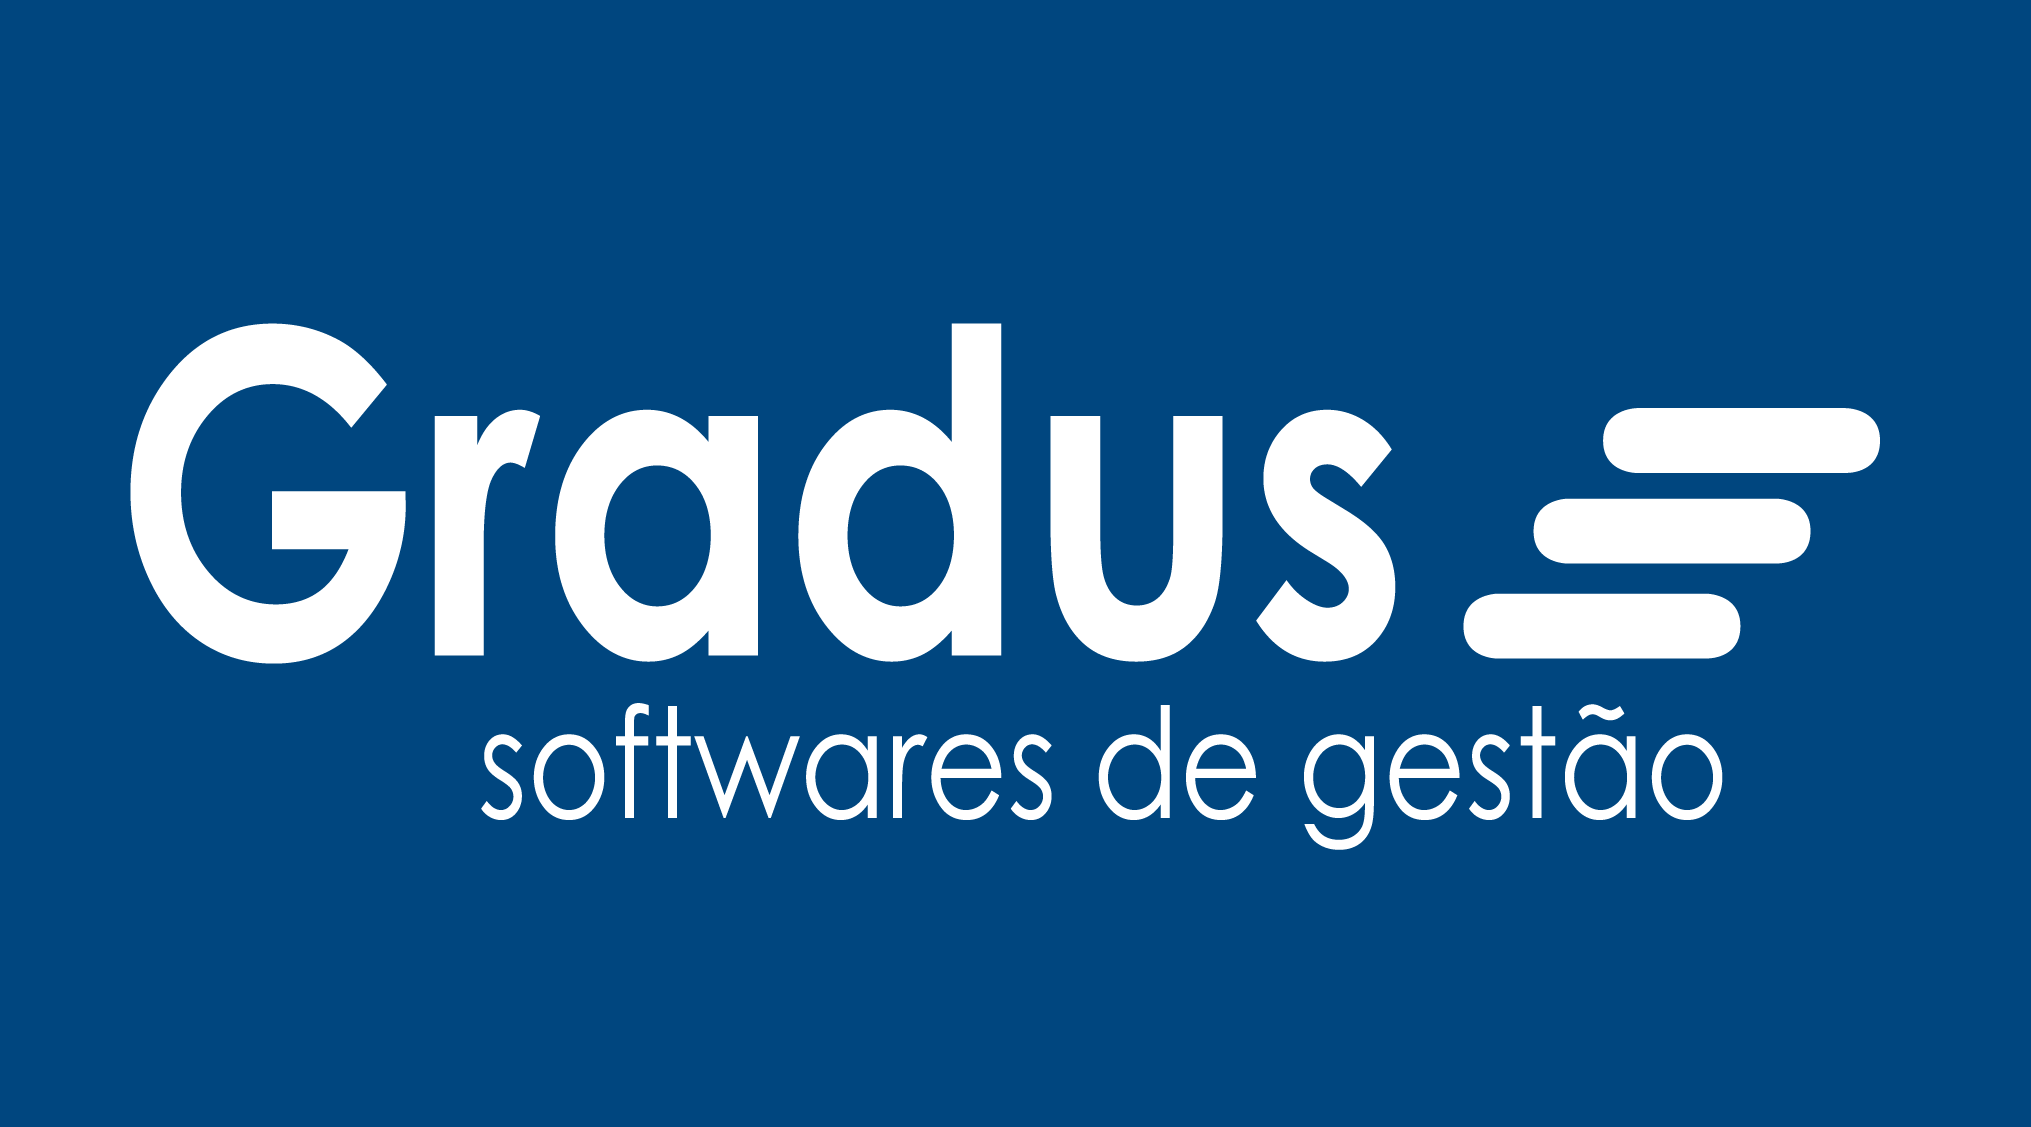 Gradus - Softwares